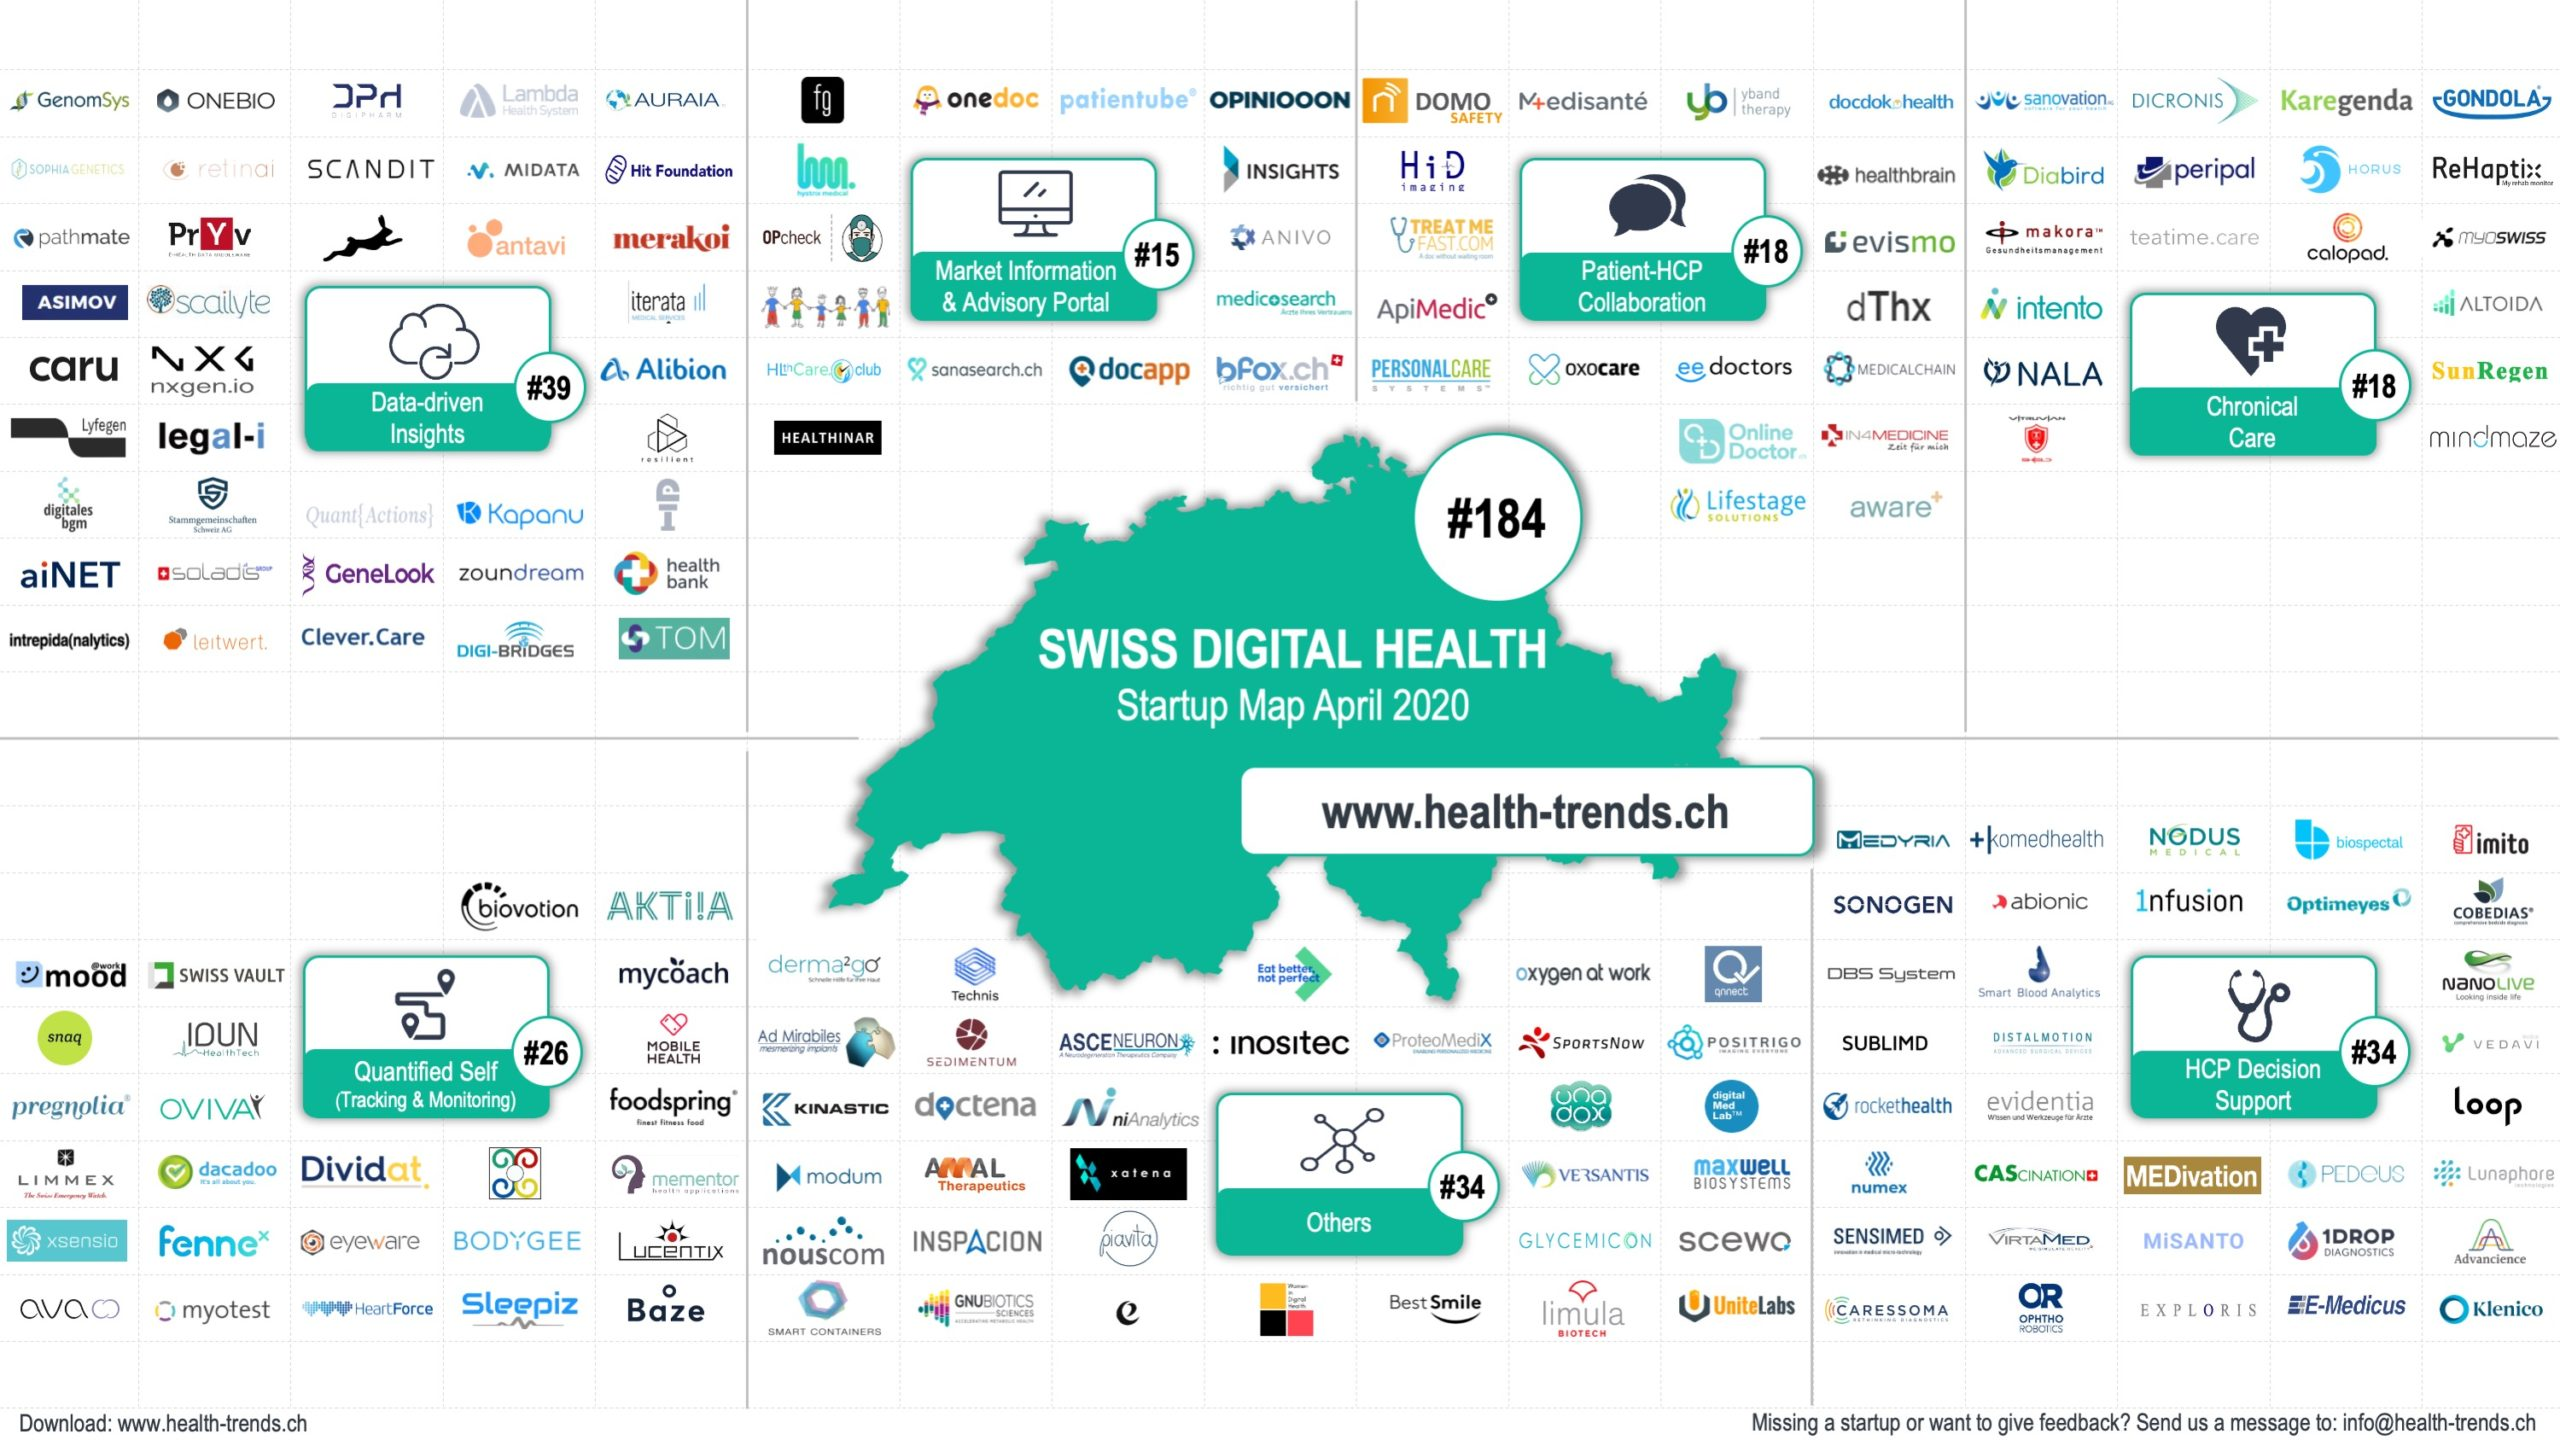 Health-Trends publishes the first exclusive SWISS DIGITAL HEALTH Map in Switzerland. Our team has identified more than 180 Swiss digital health startups.